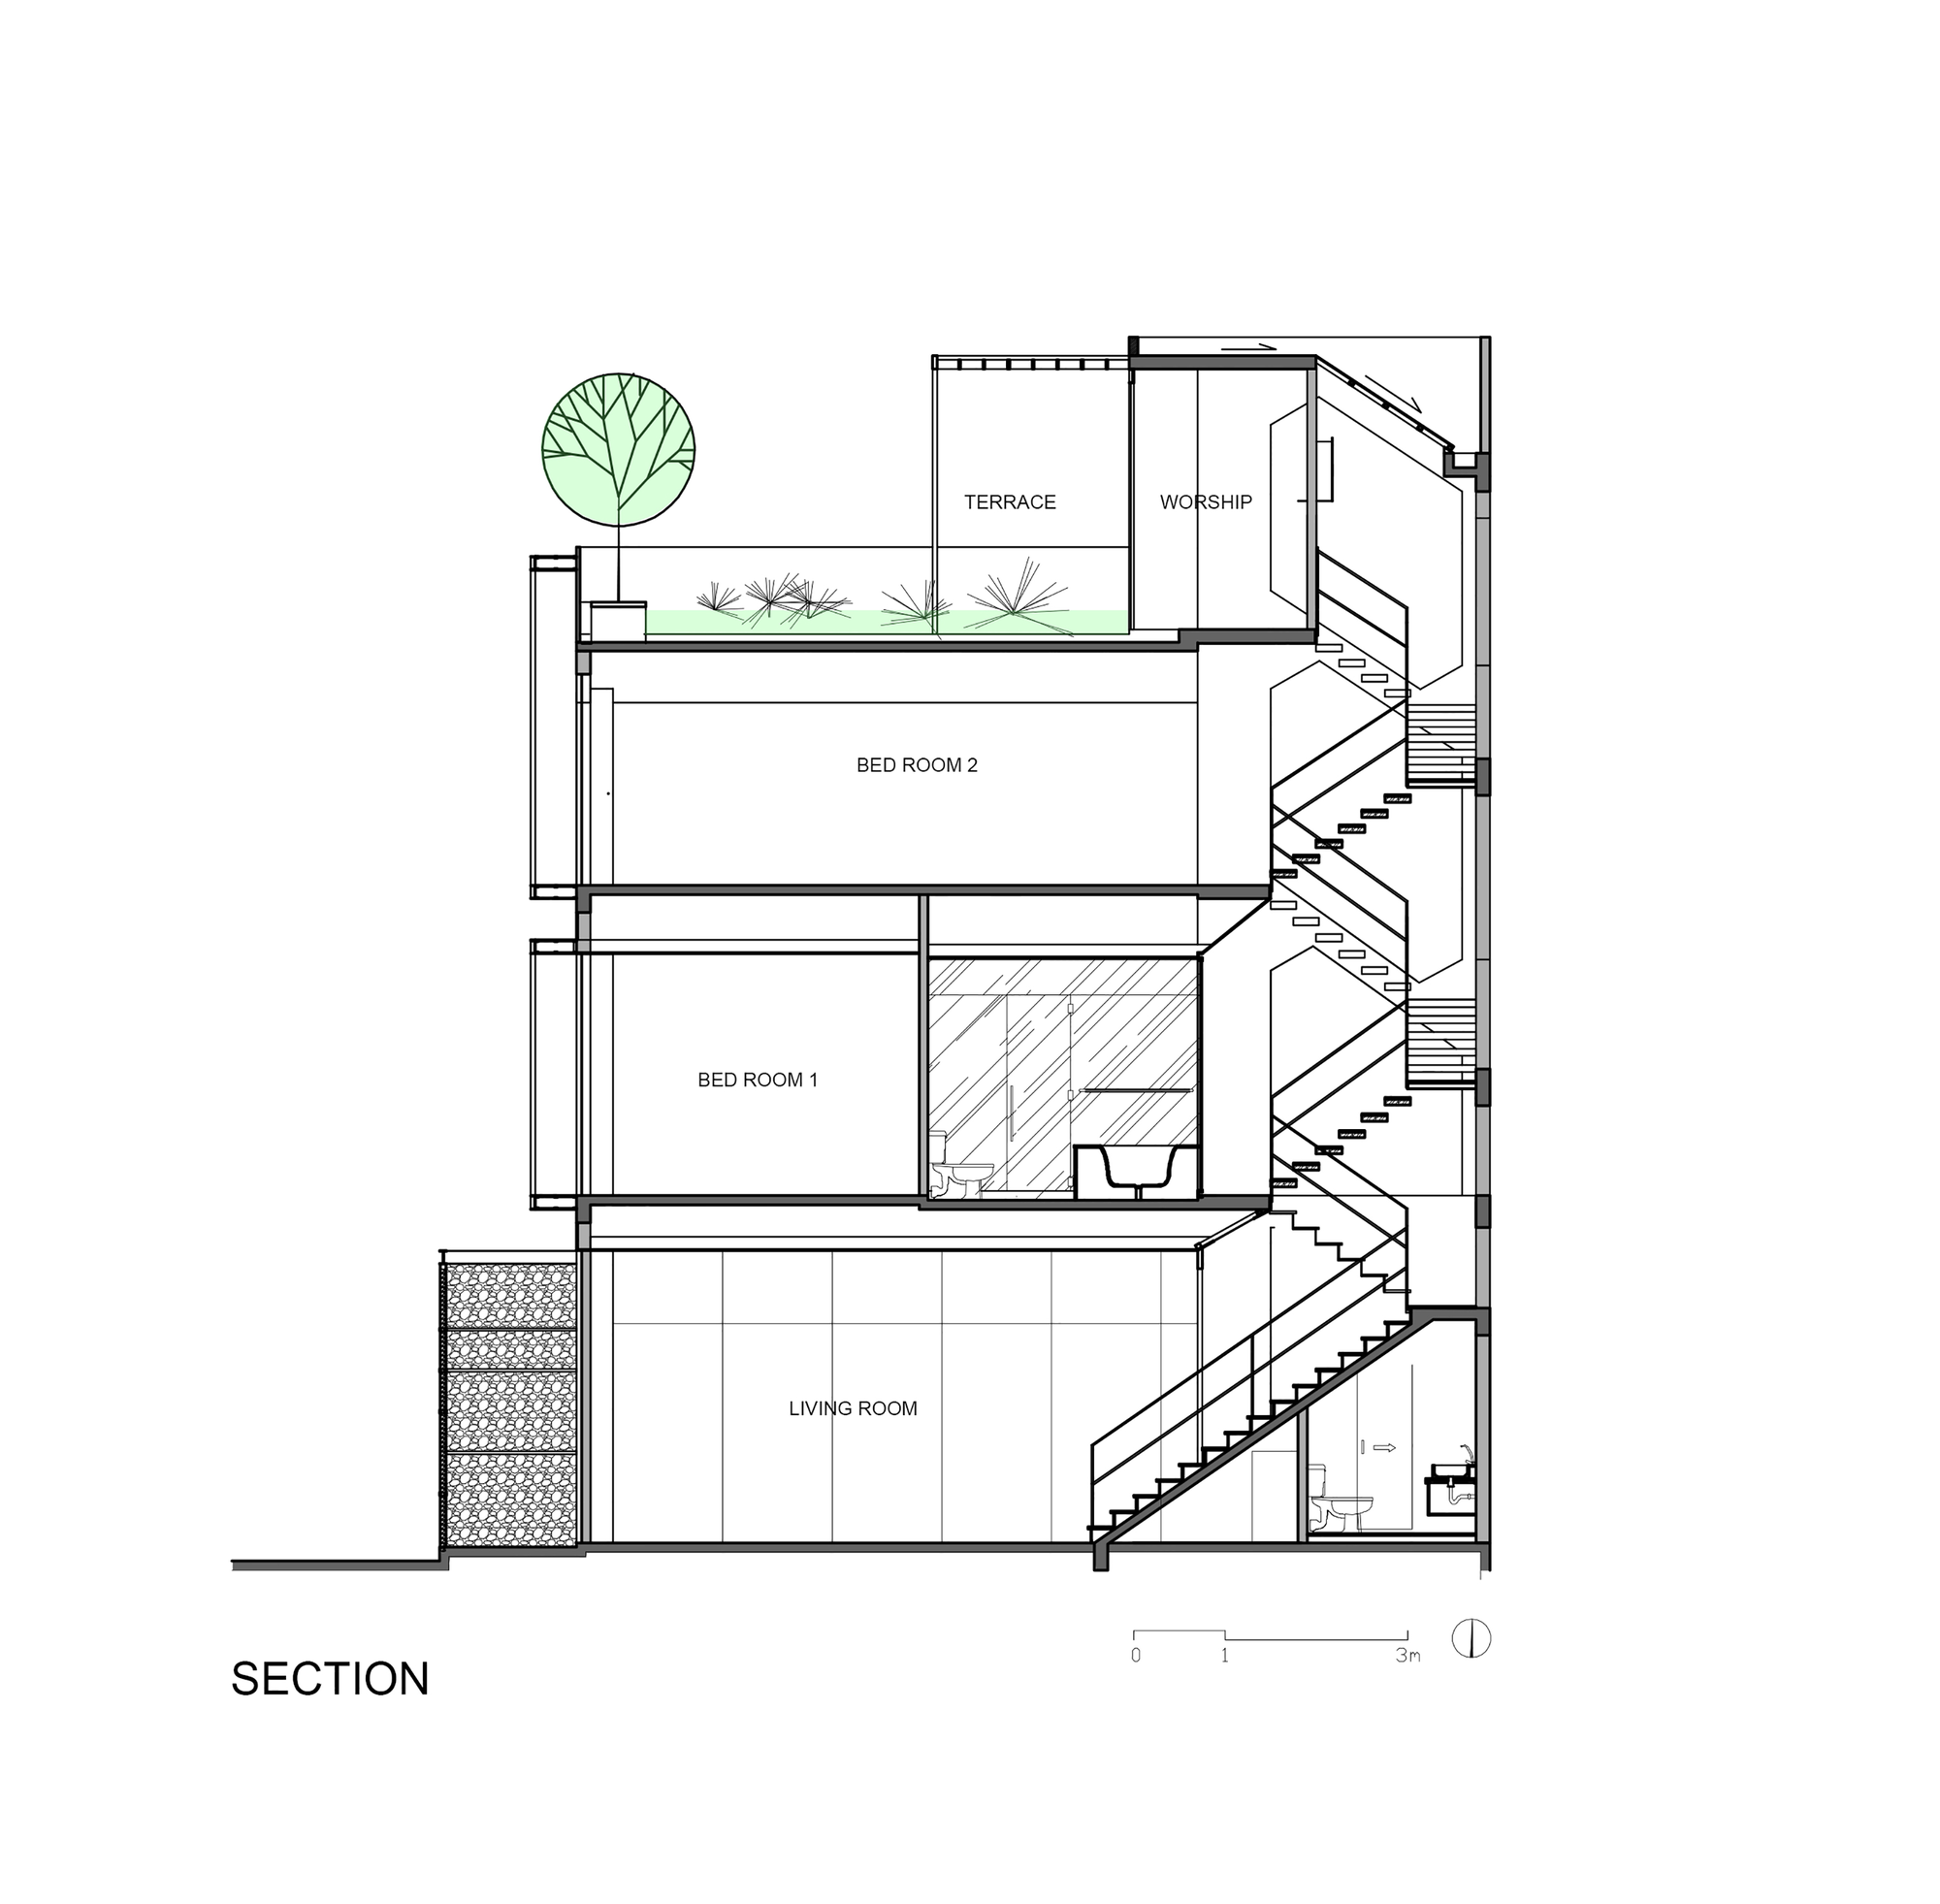 3-10_House-DD_concept-35.png